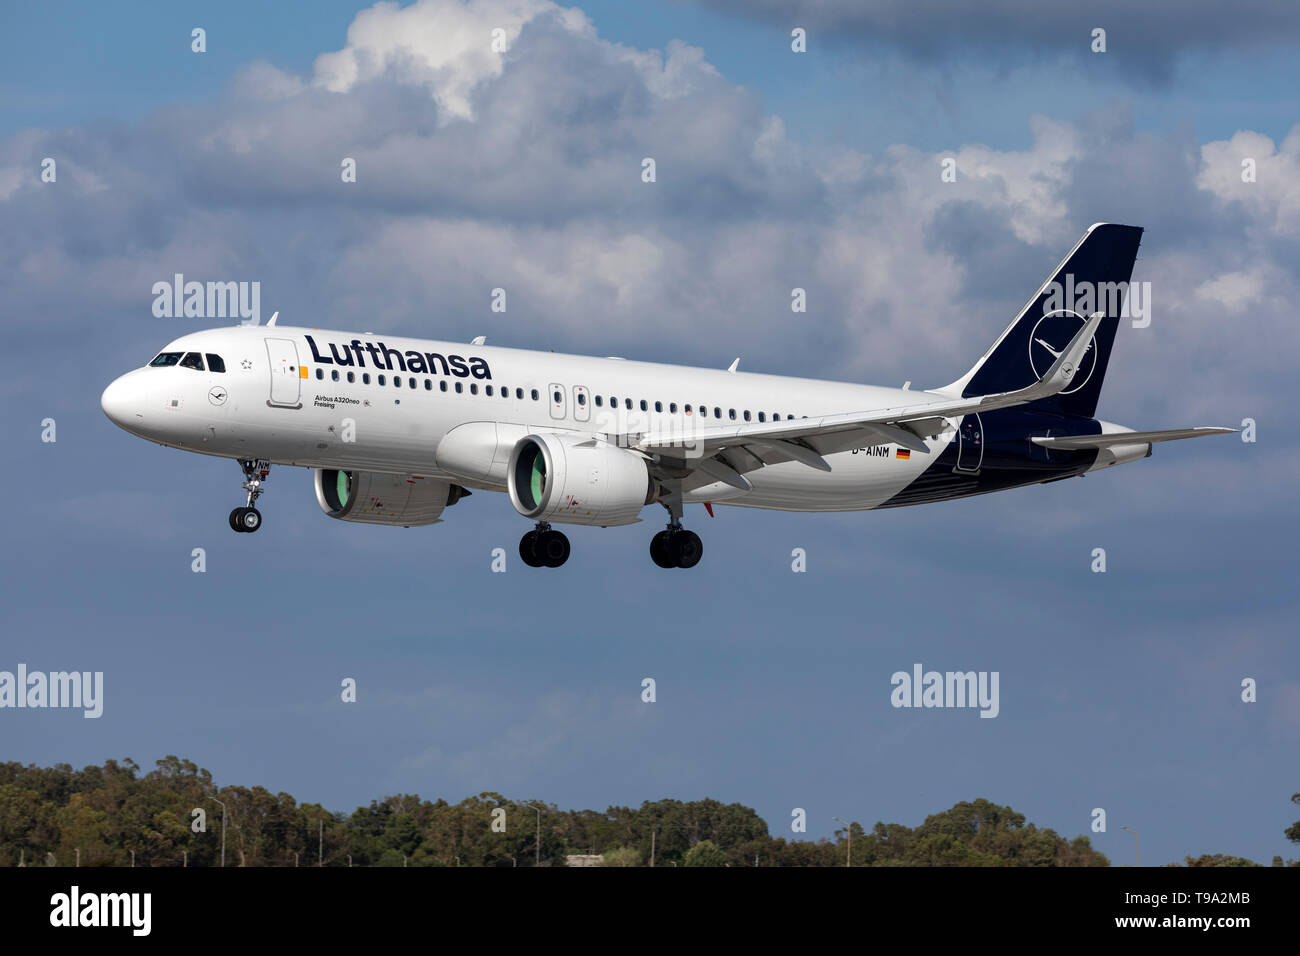 Lufthansa Airbus A320-271N (D-AINM) landing 31, in new color scheme. - Stock Image